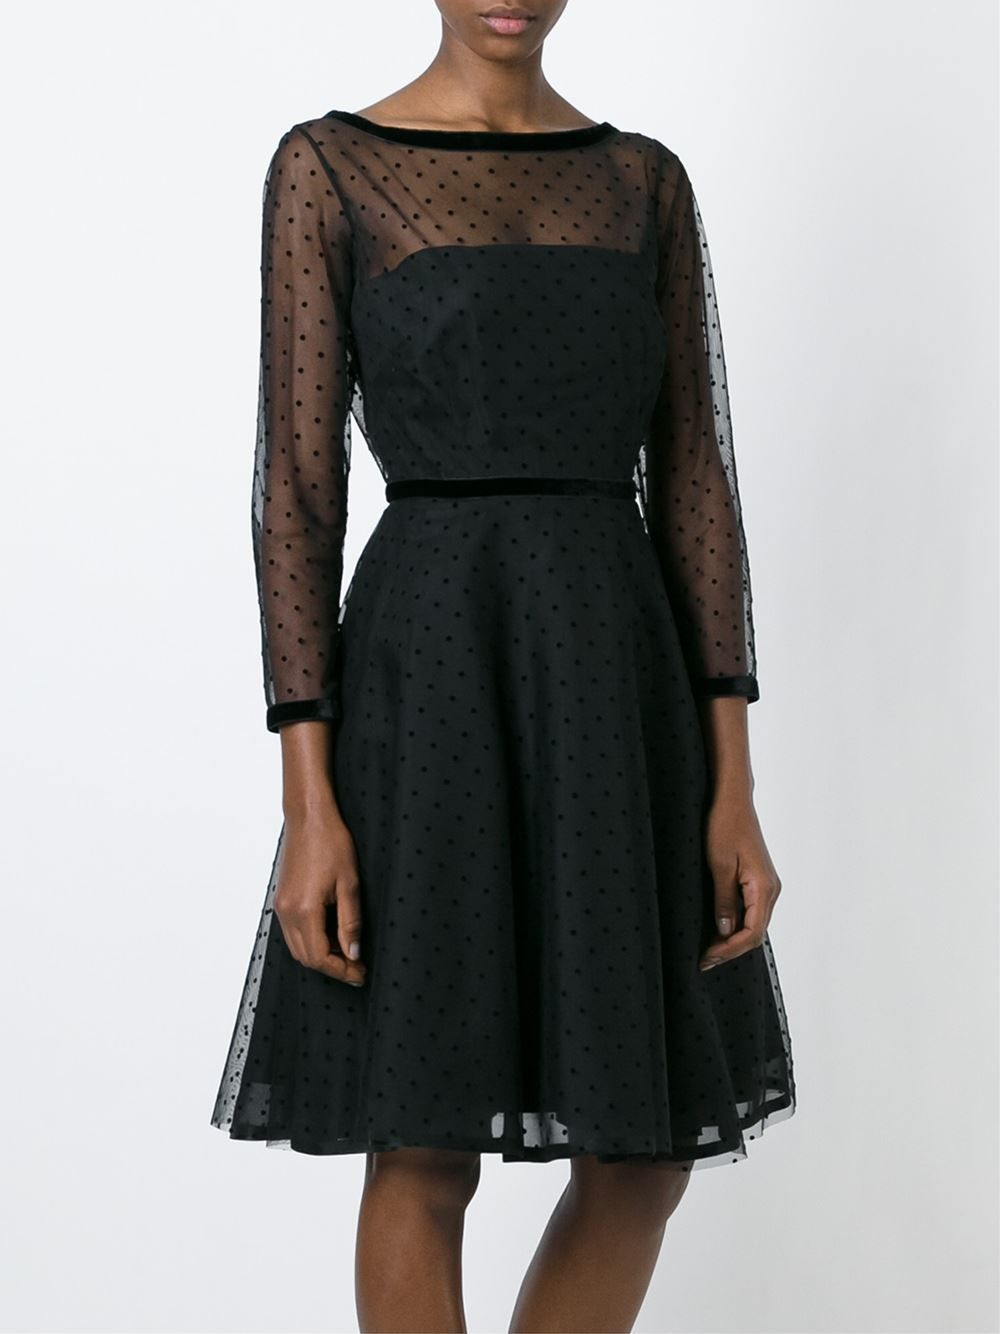 #marcbymarcjacobs #dress #tul #black #party #woman #fashion www.jofre.eu